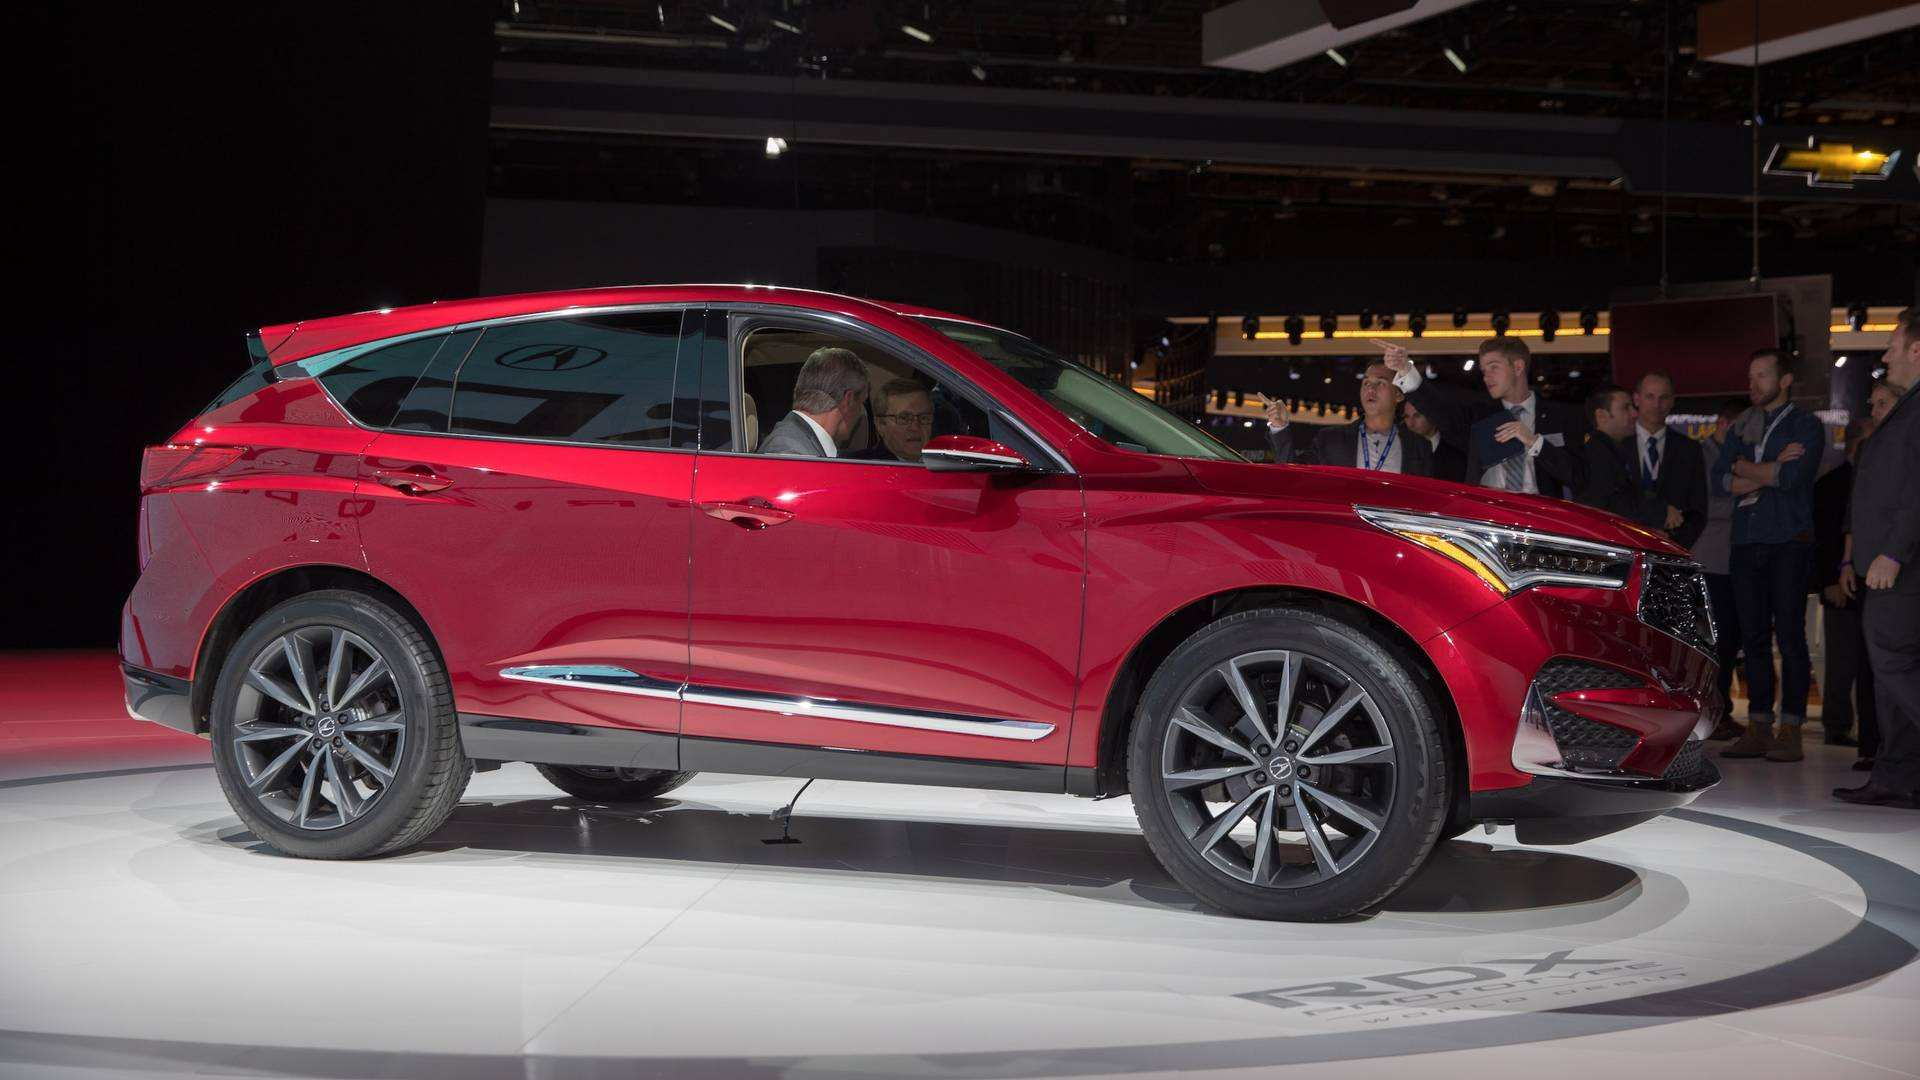 73 New The Acura Rdx 2019 Release Date Usa Spy Shoot Images with The Acura Rdx 2019 Release Date Usa Spy Shoot